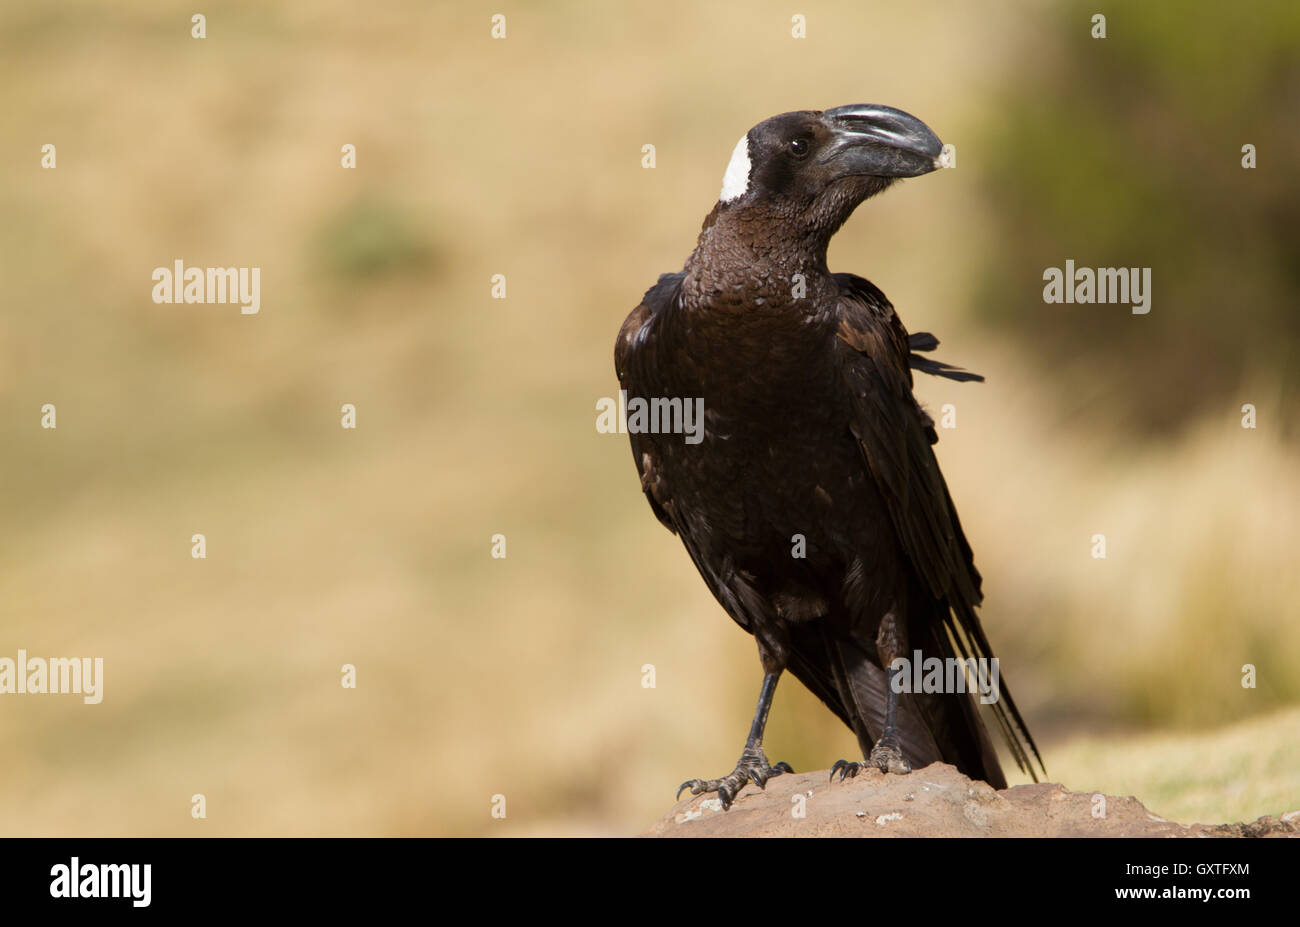 Thick-billed Raven (Corvus crassirostris) perched on a rock - Stock Image